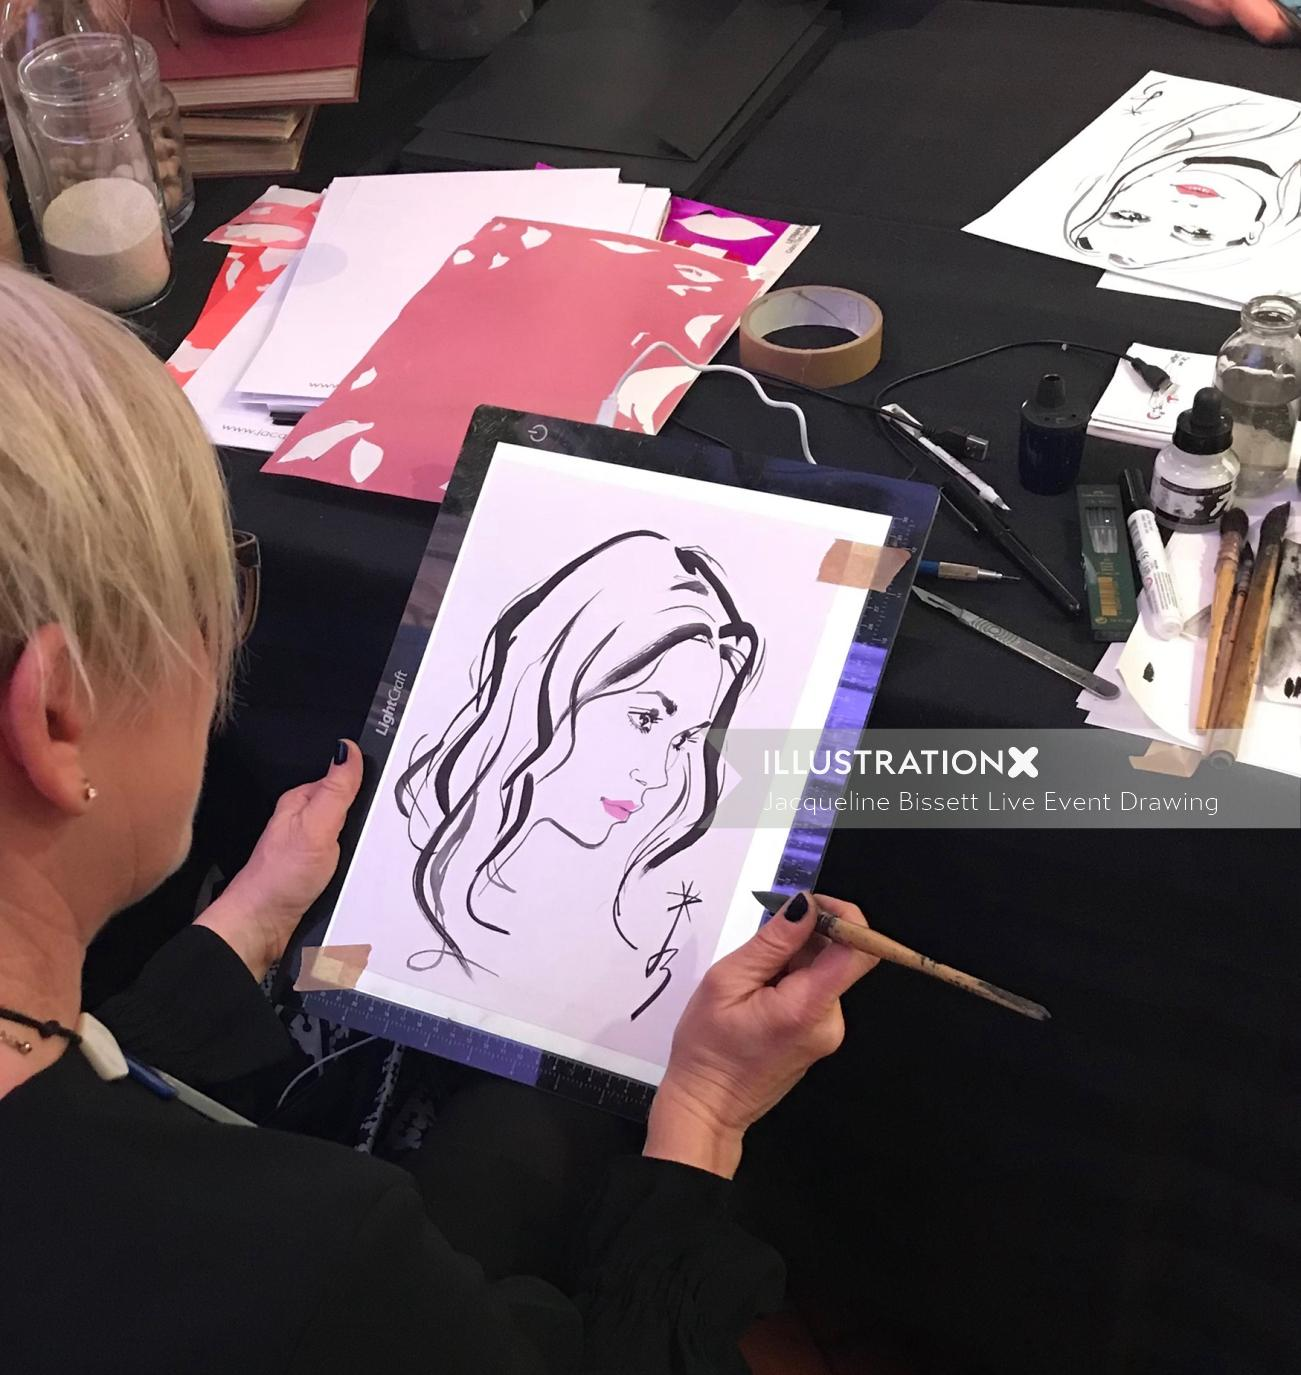 Live event drawing with Private Drama by Jacqueline Bissett